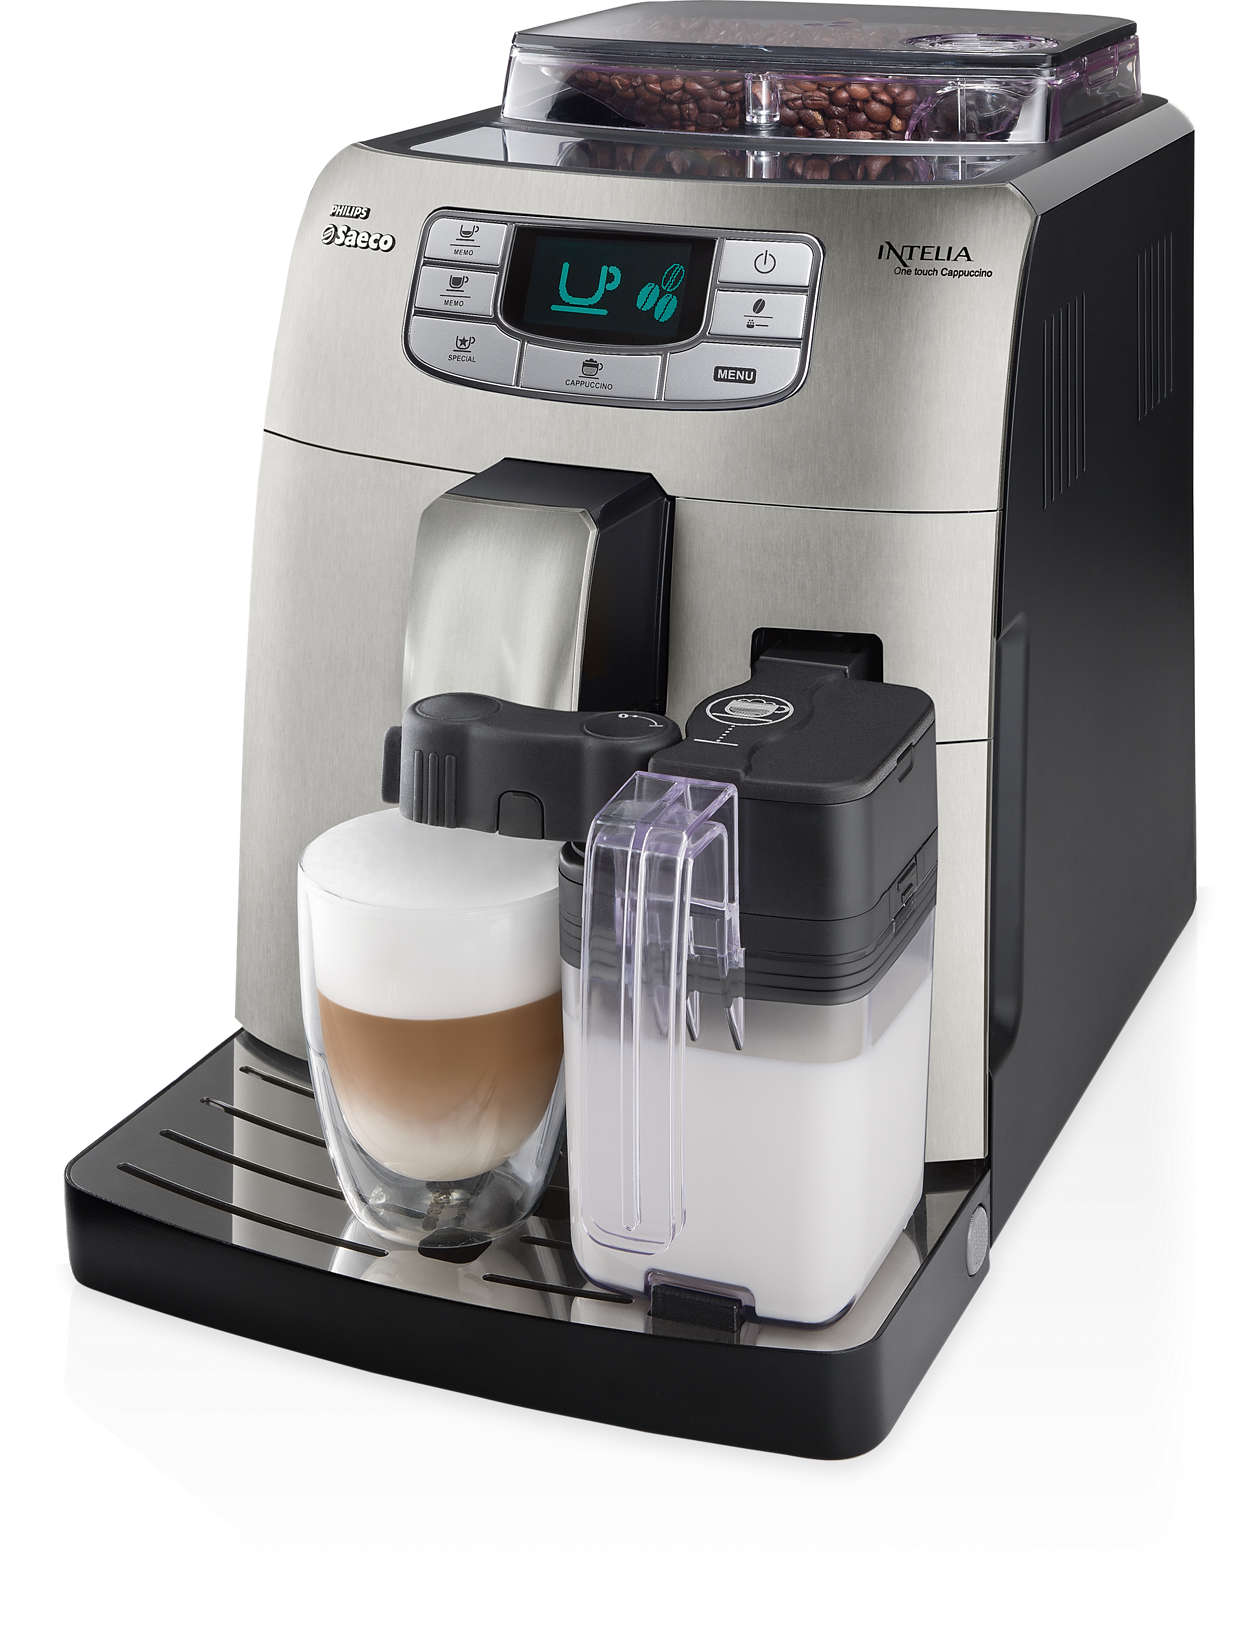 The Best Espresso Machine For Cafe